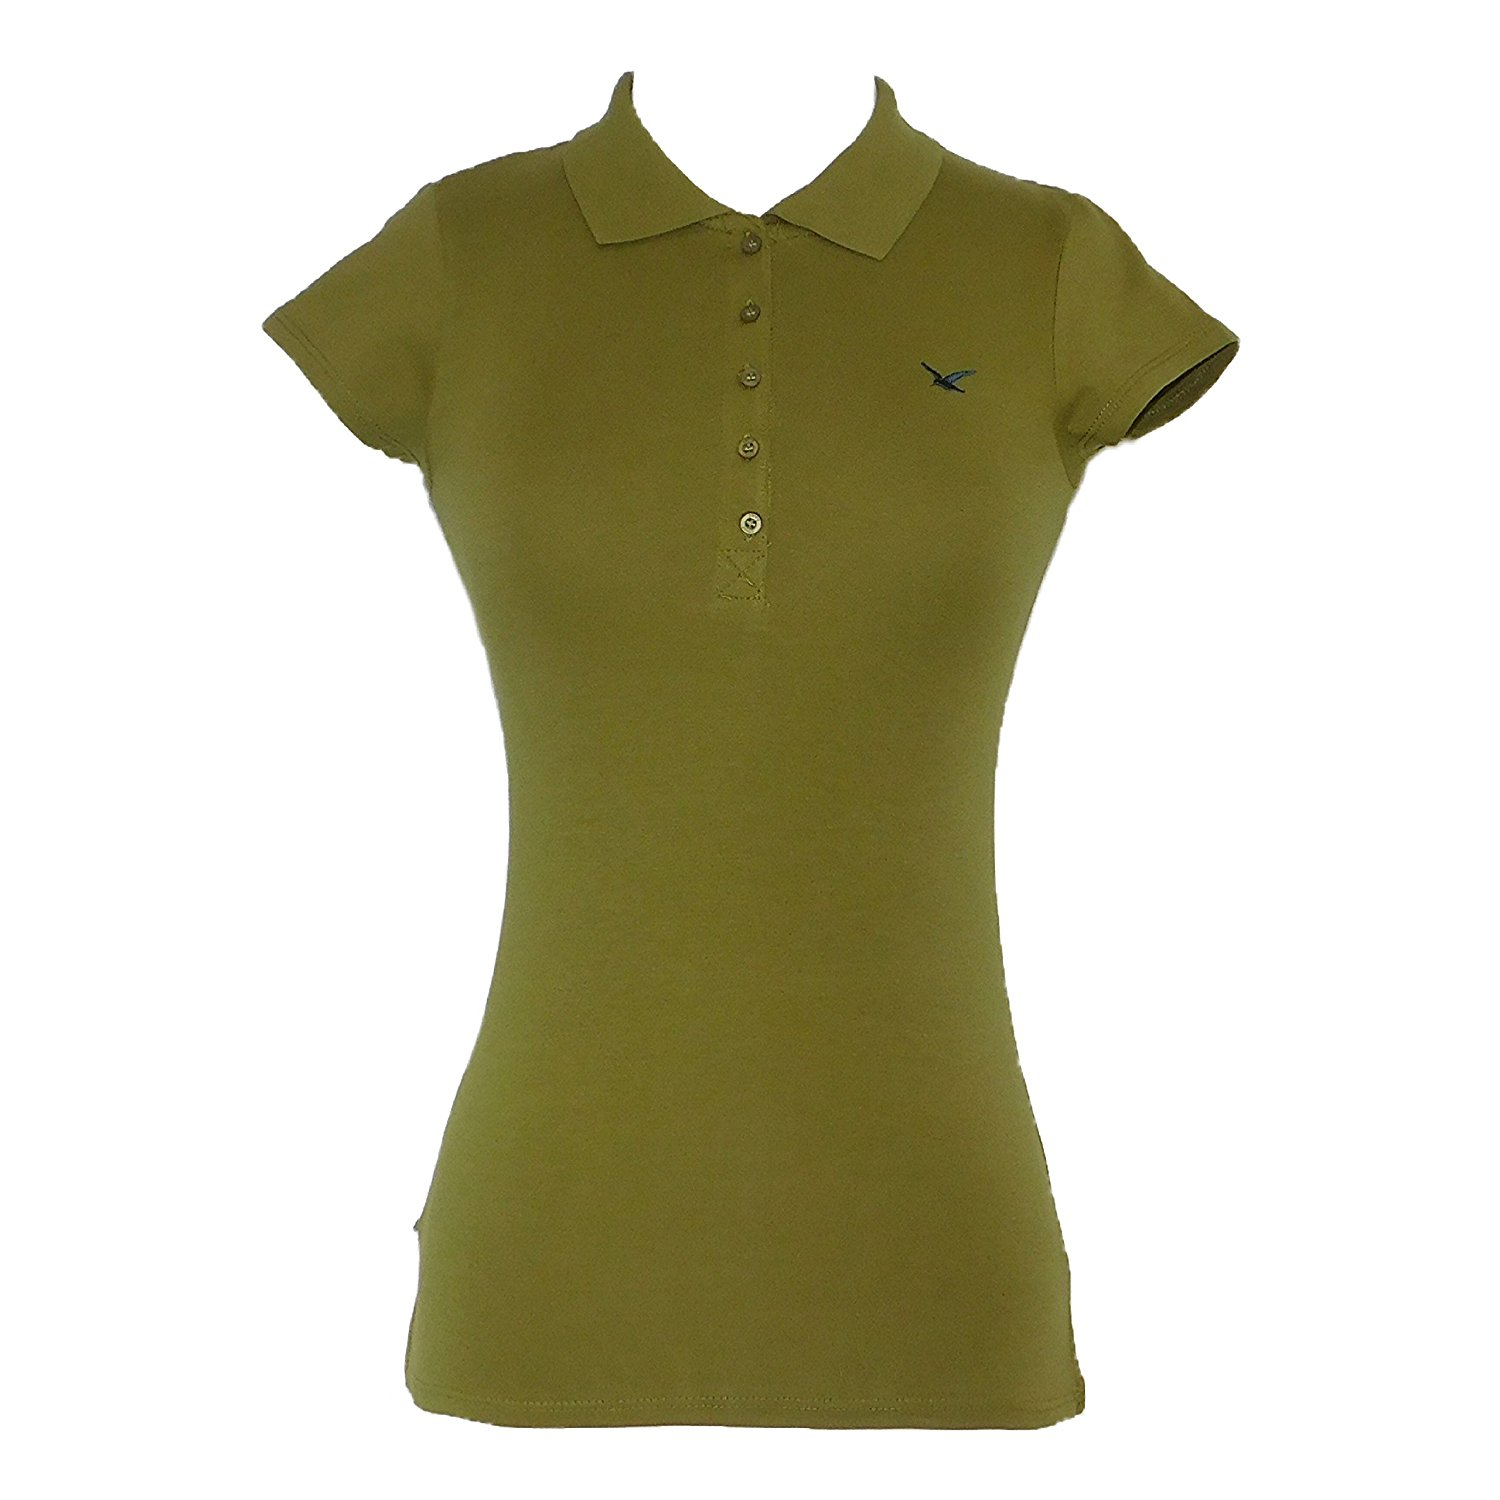 bffbcc4027d Cheap Green Polo Top, find Green Polo Top deals on line at Alibaba.com